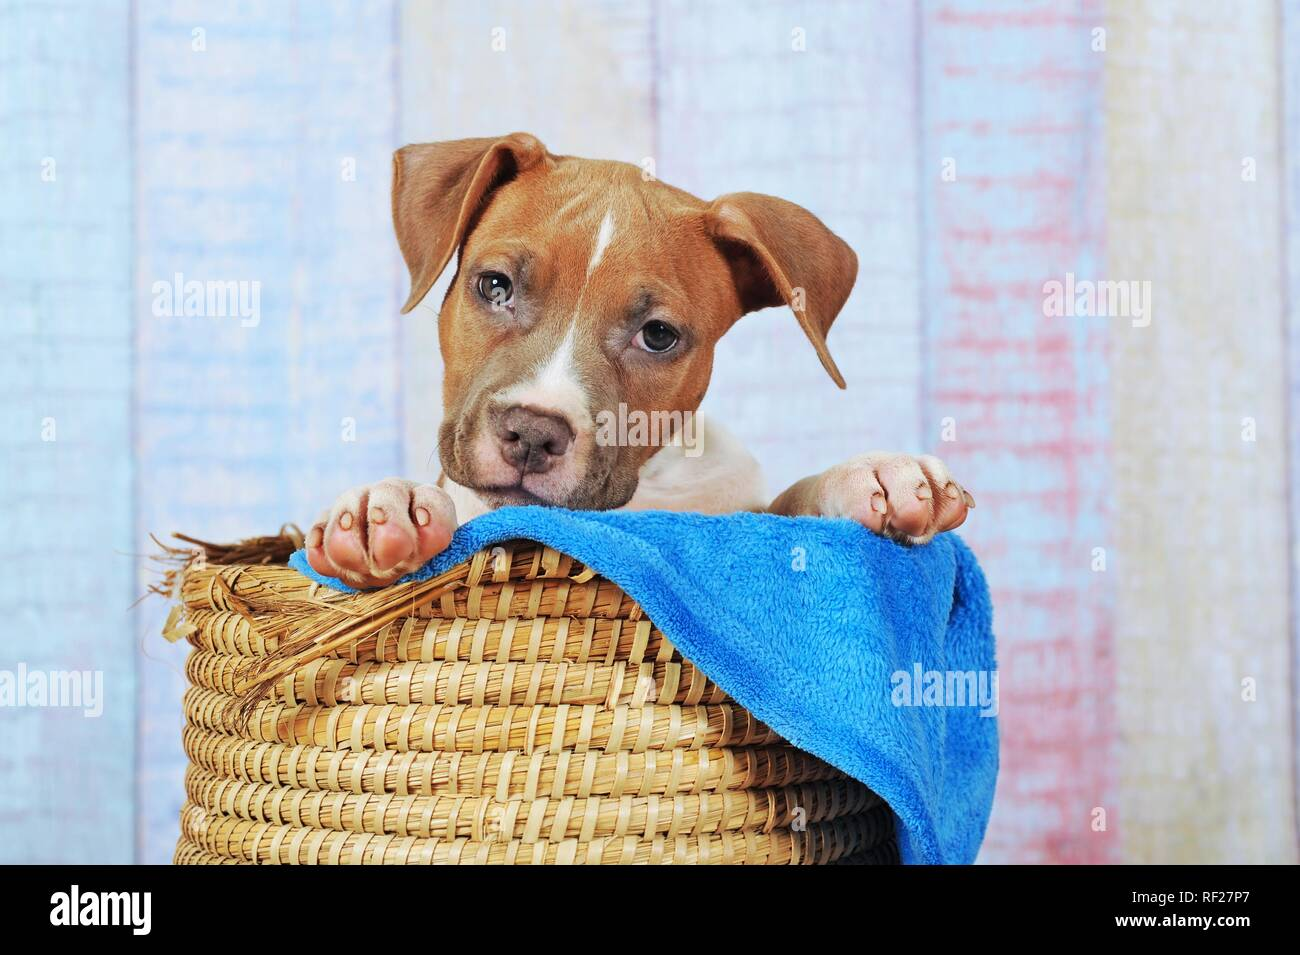 American Staffordshire Terrier, puppy 11 weeks, red white, sitting in basket, Austria - Stock Image